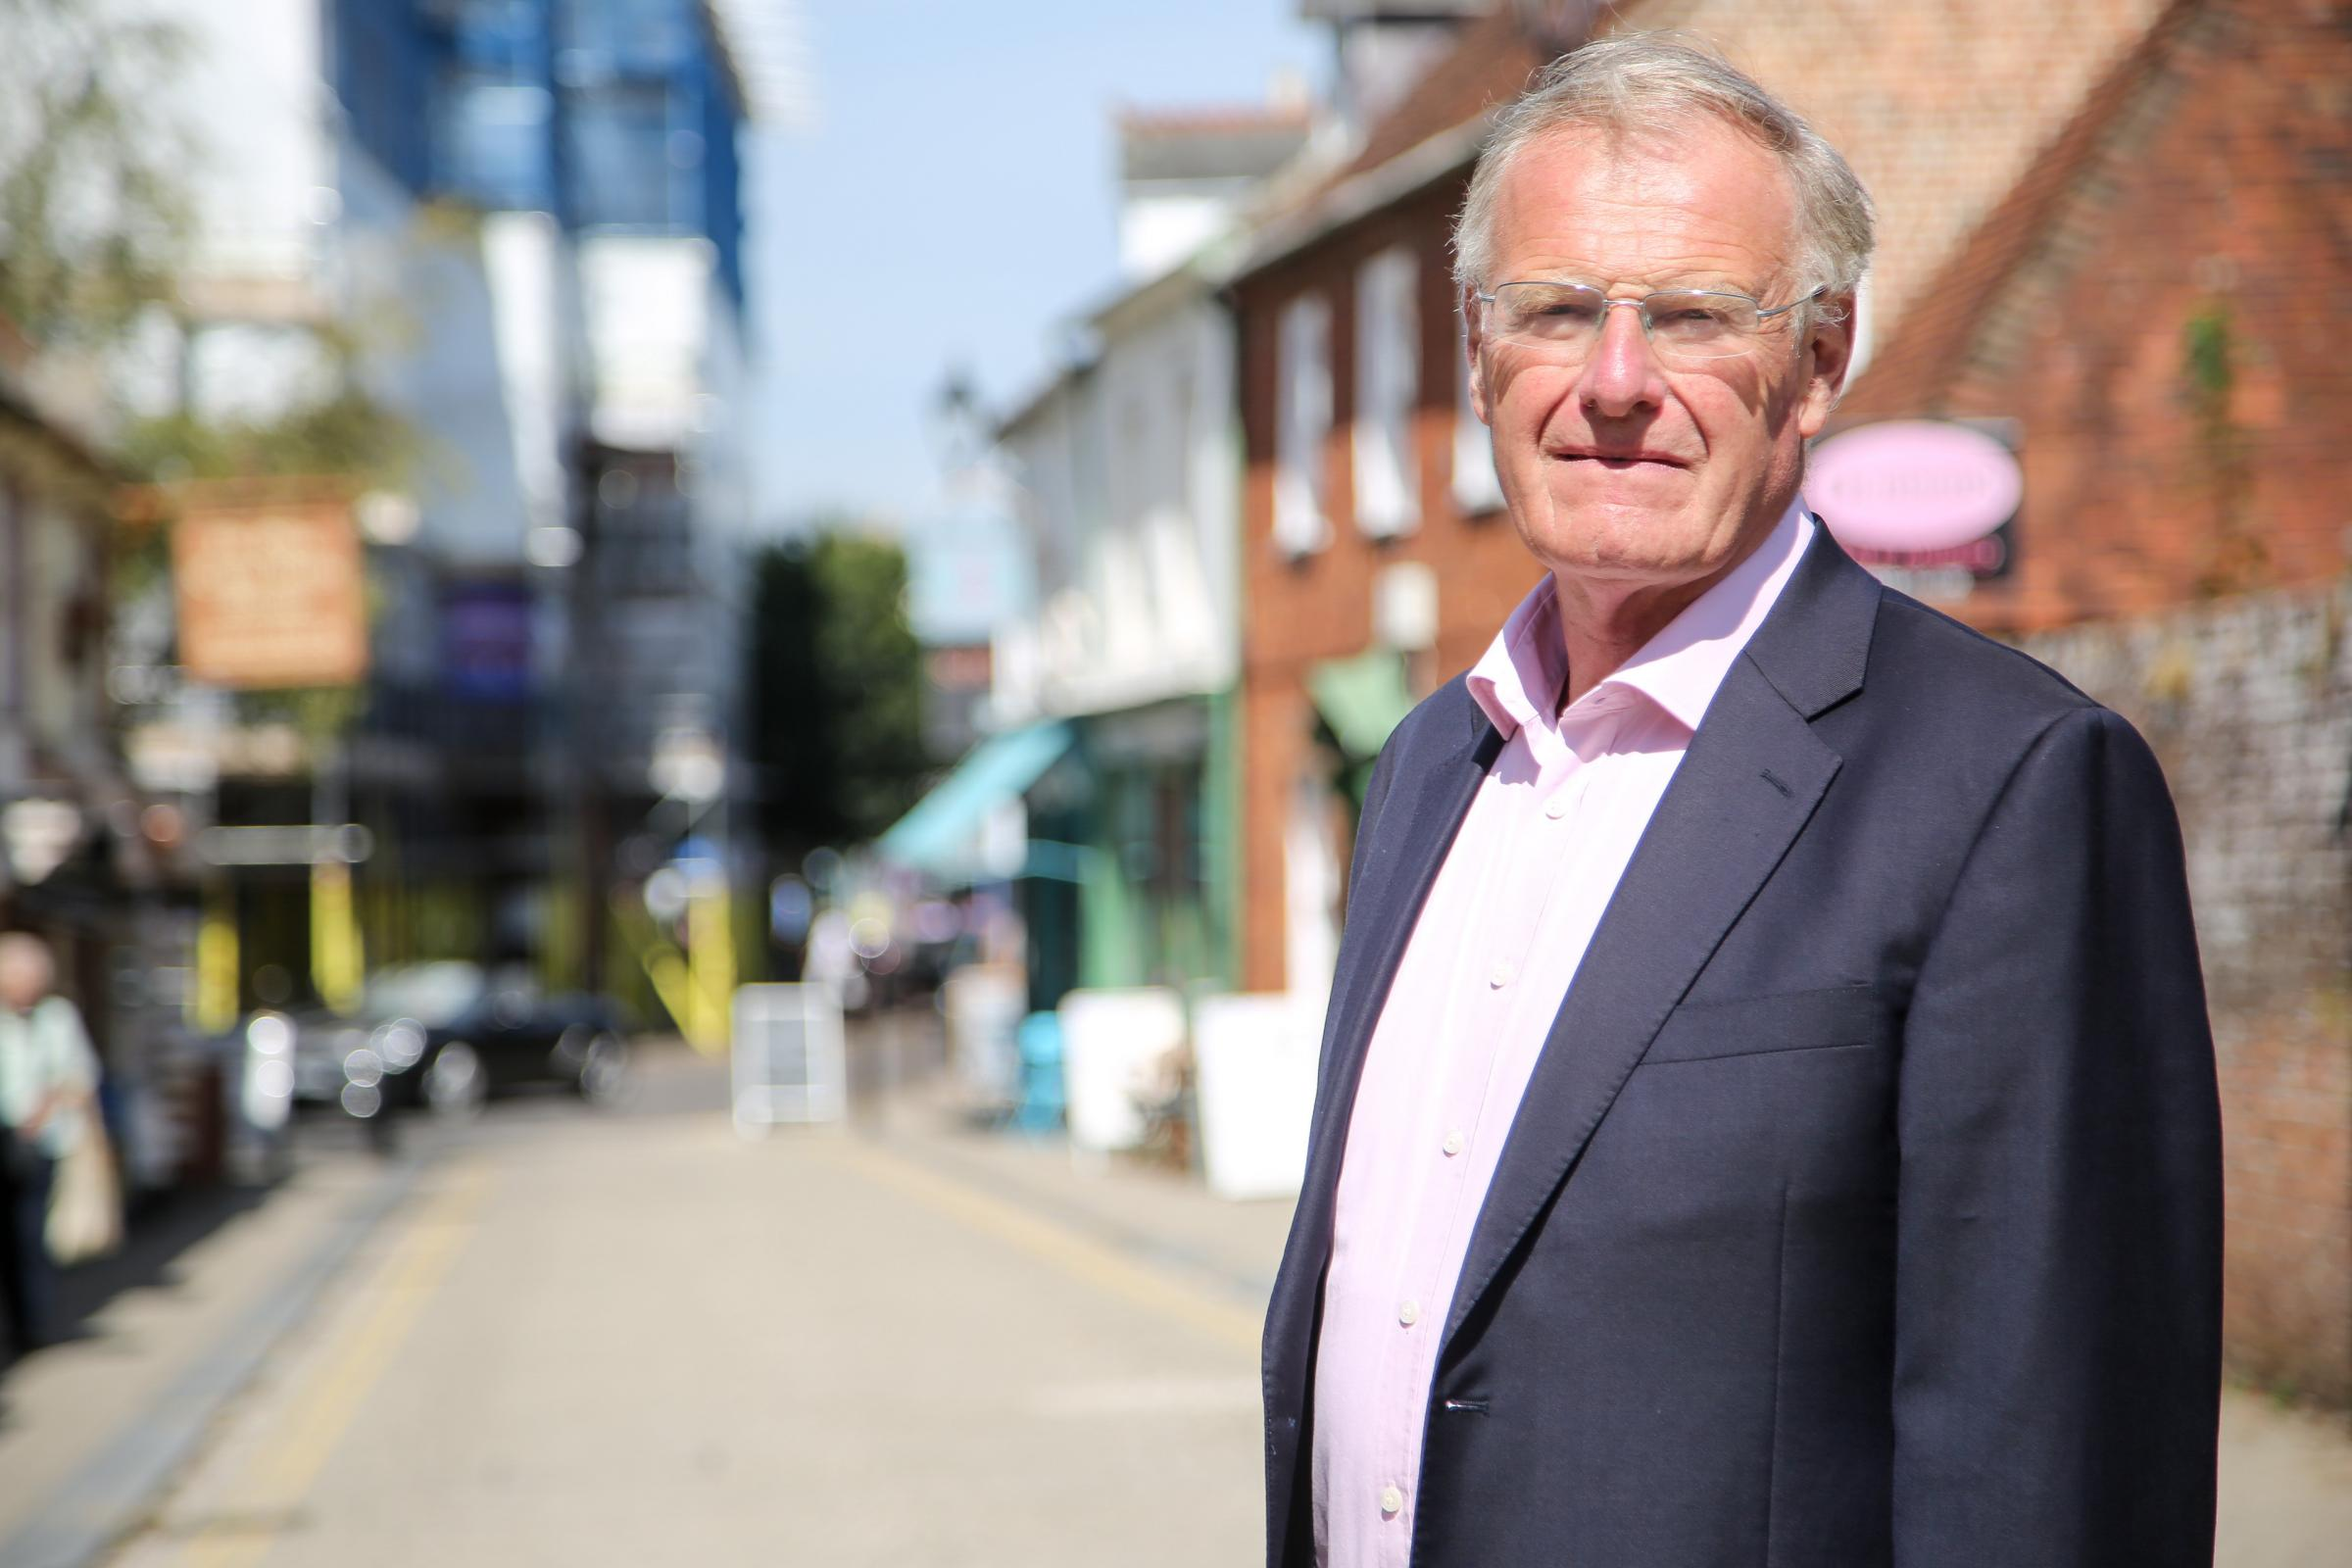 Christchurch MP Sir Christopher Chope